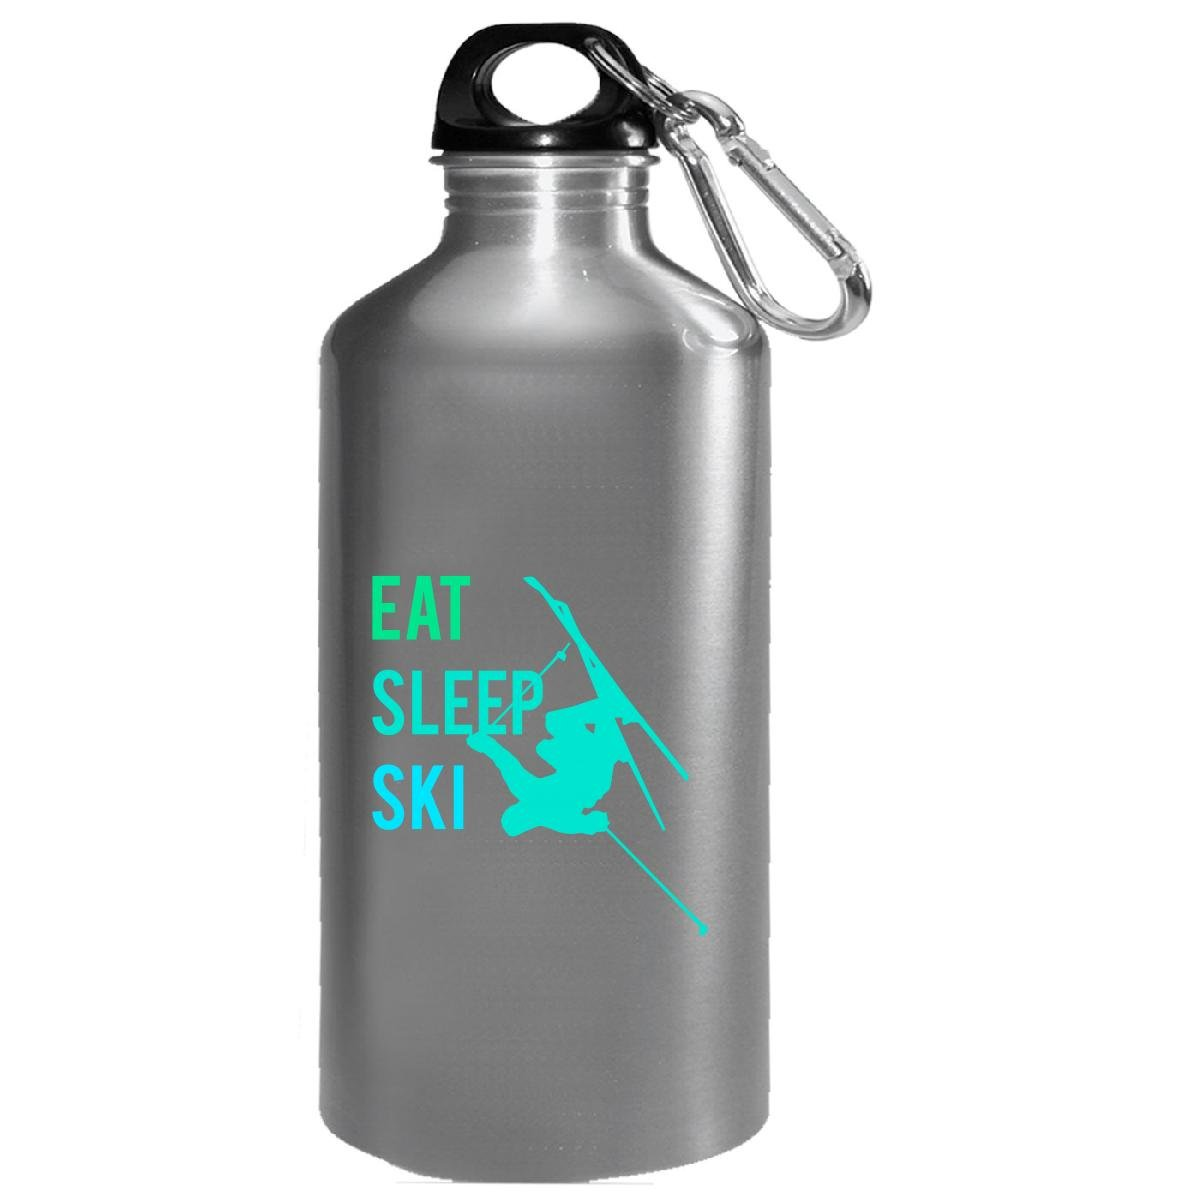 Eat Sleep Ski Extreme Sports Mountain Skiing Skier Winter - Water Bottle by VONC